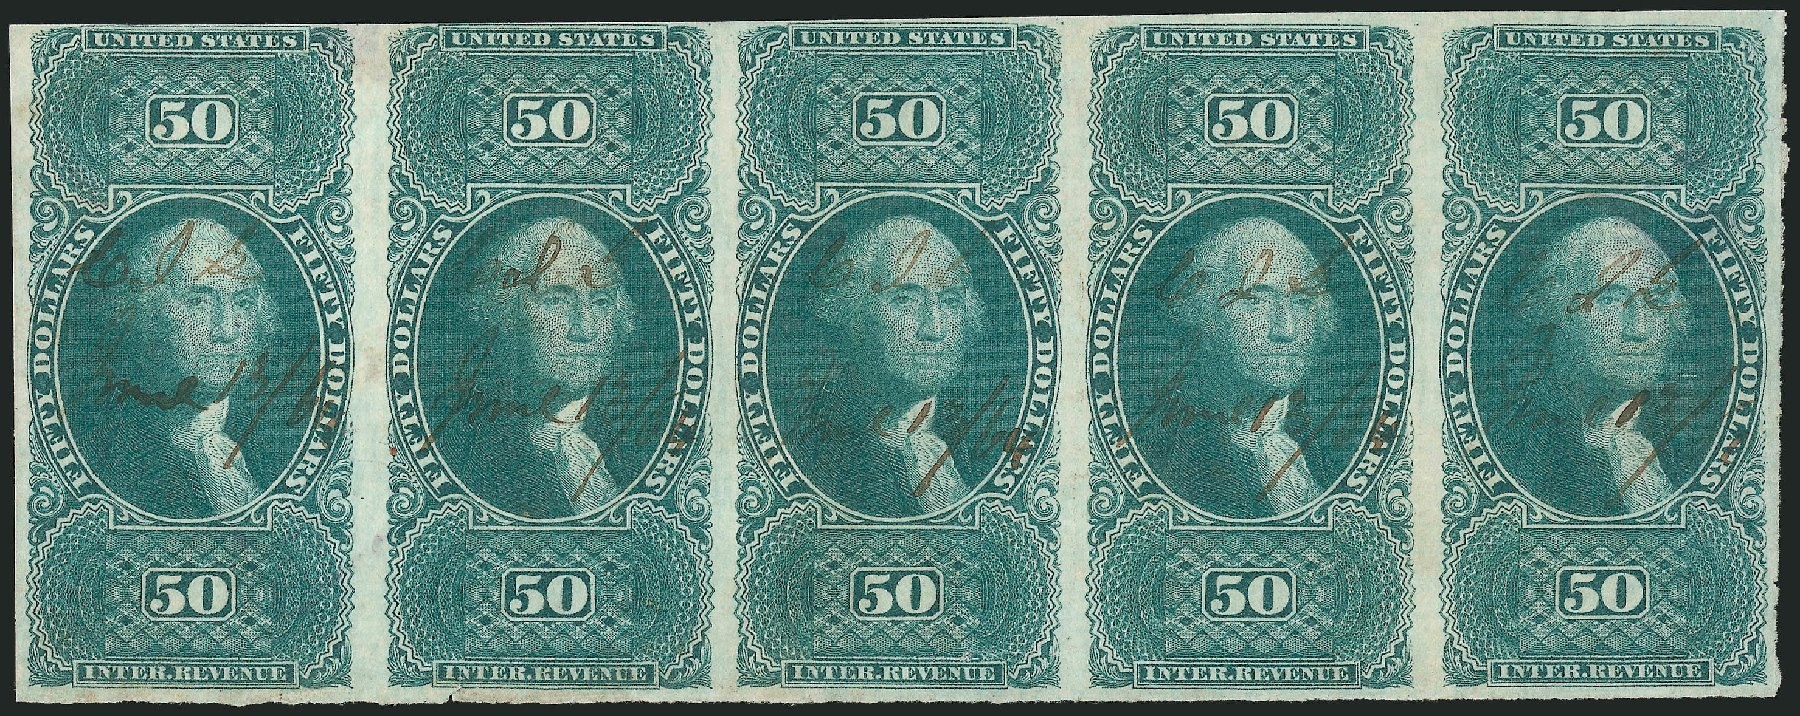 US Stamps Price Scott R101: US$50.00 1863 Revenue Internal. Robert Siegel Auction Galleries, Dec 2014, Sale 1089, Lot 384